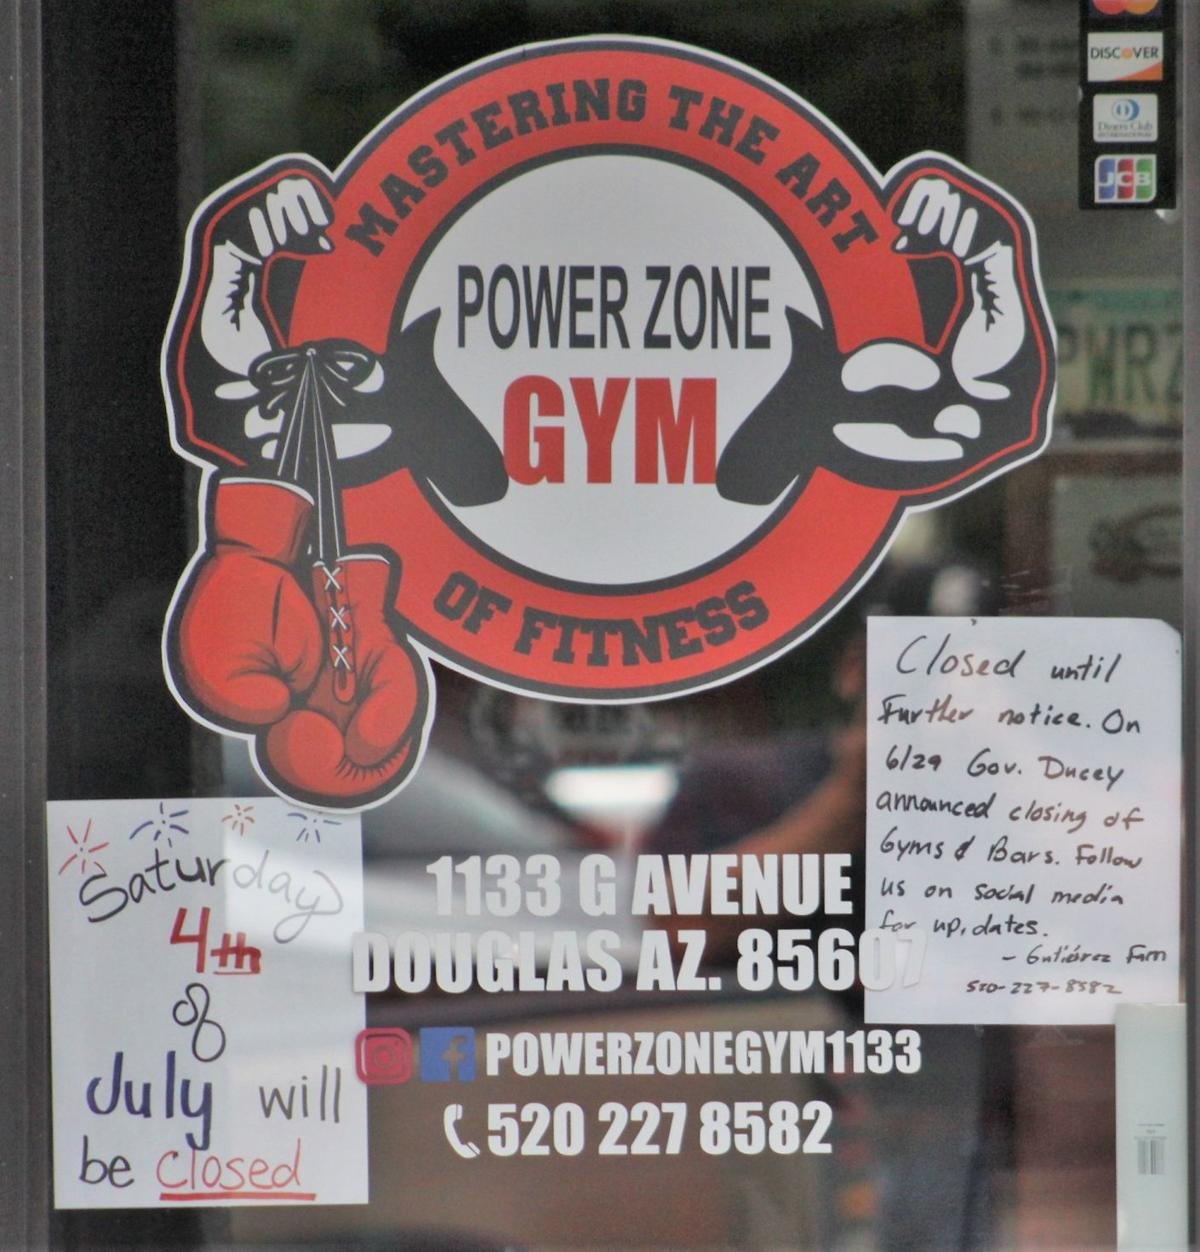 Local gym finds way to remain open, while others forced to close during mandated closure